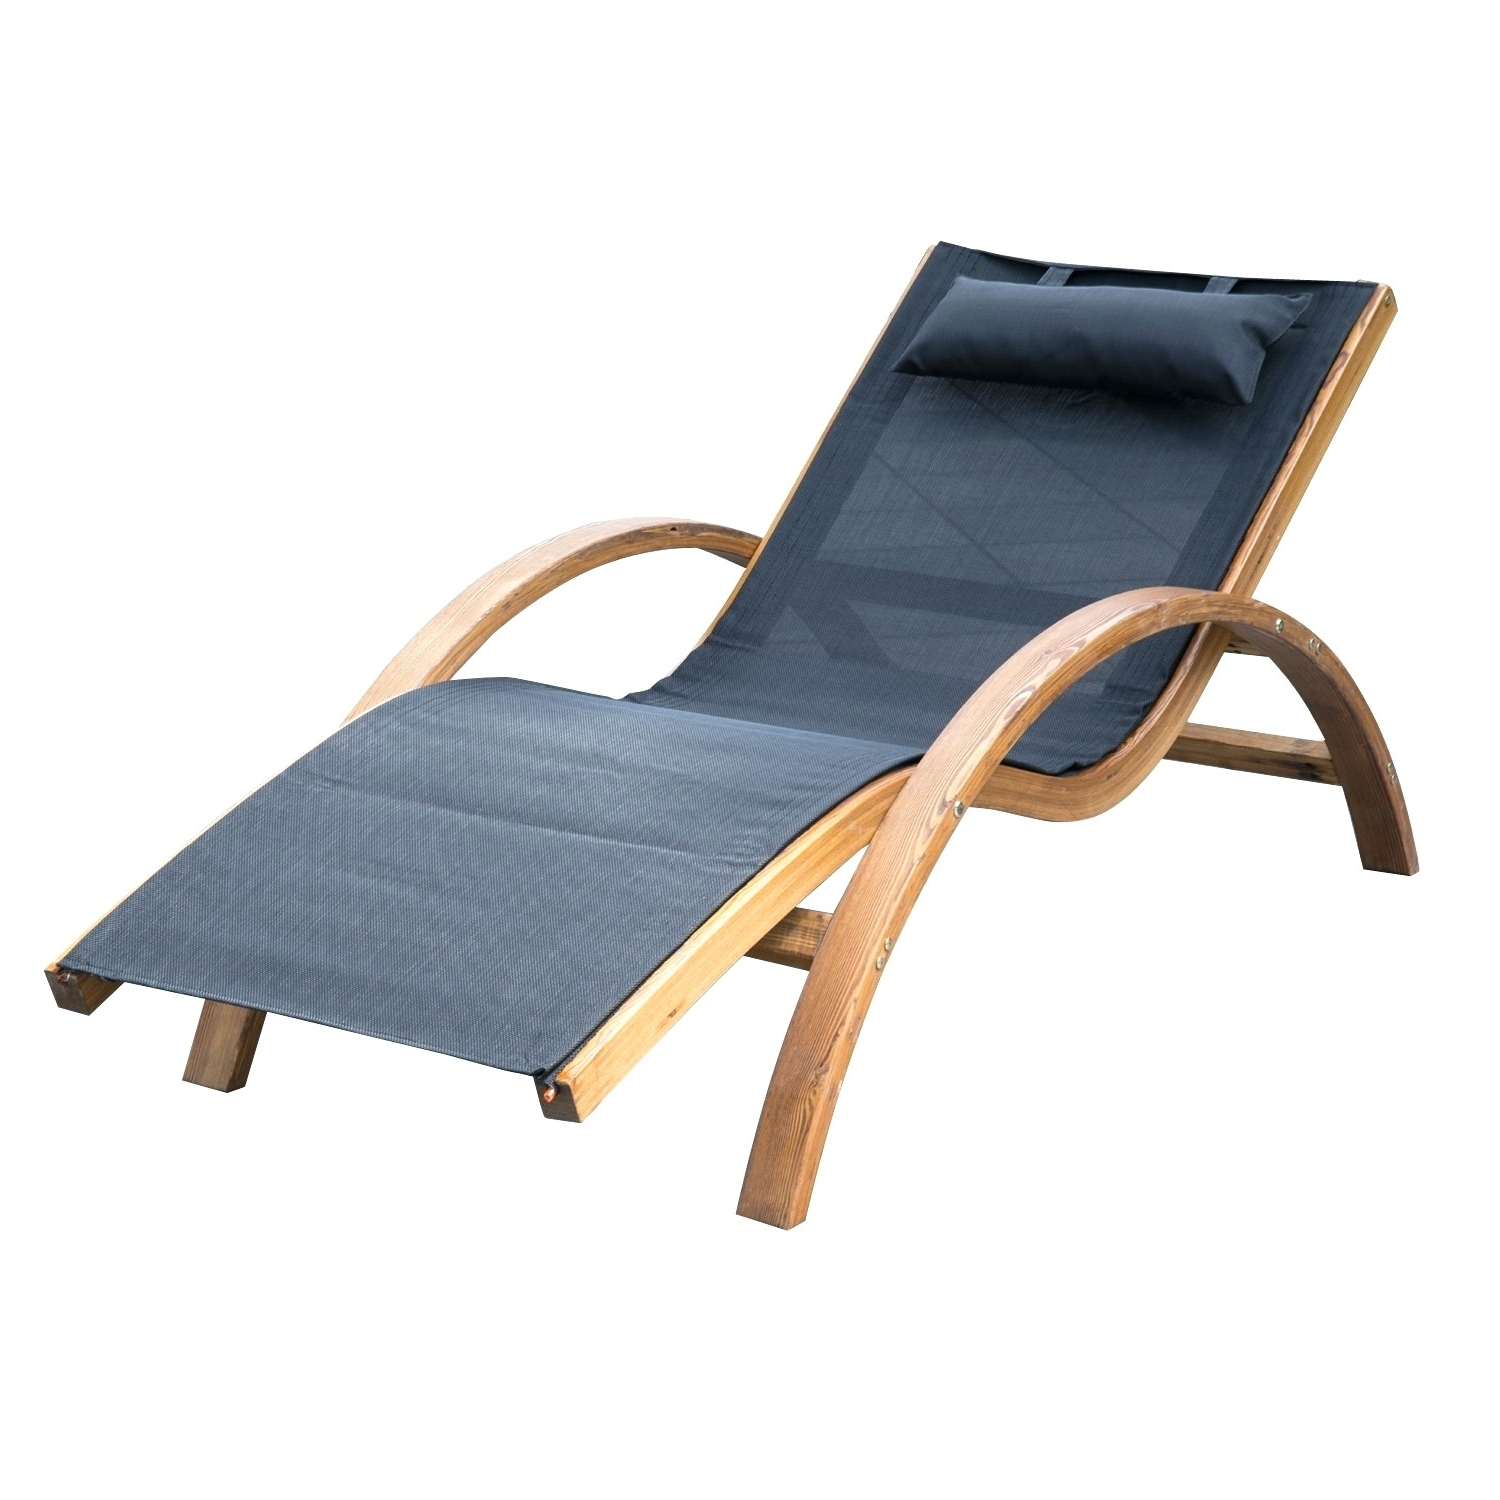 Outsunny Outdoor Mesh Lounger With Cushion Black Green Resin Throughout Well Liked Green Resin Chaise Lounge Chairs (View 8 of 15)